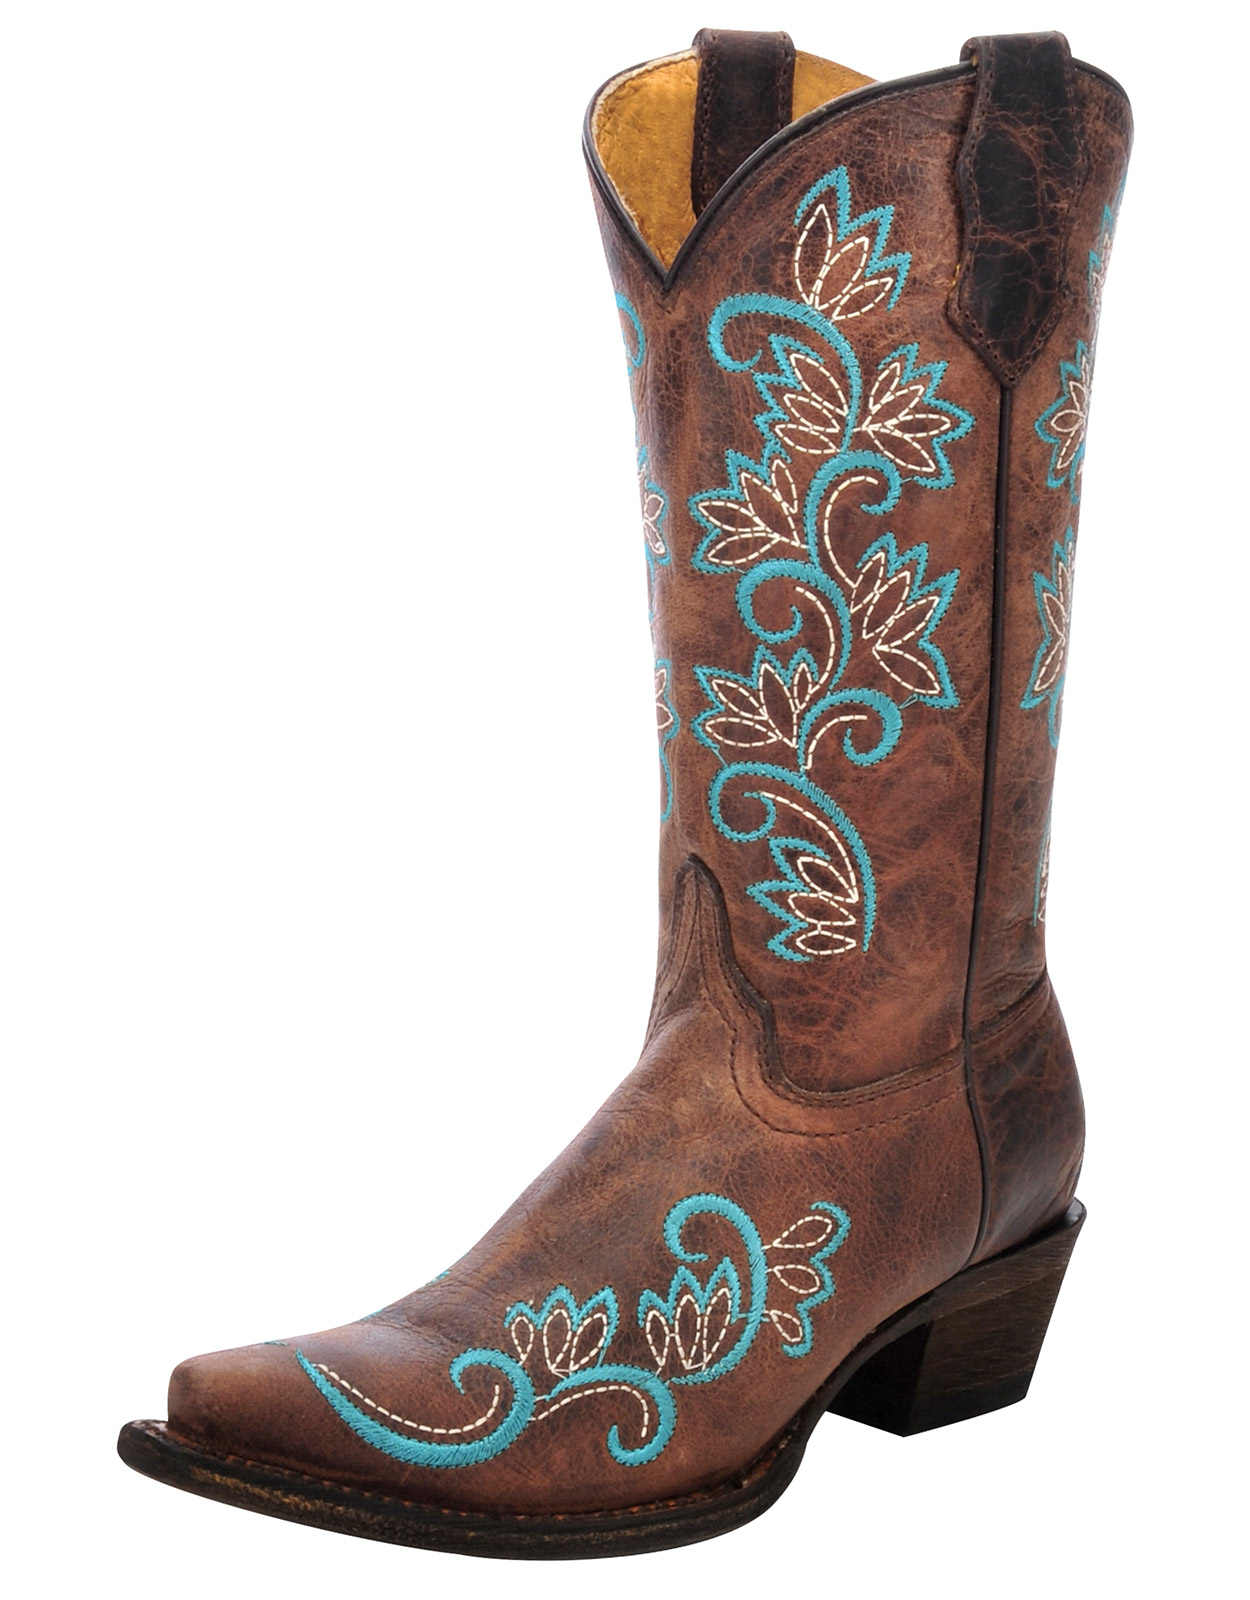 Corral Youth Turquoise & Studs 10